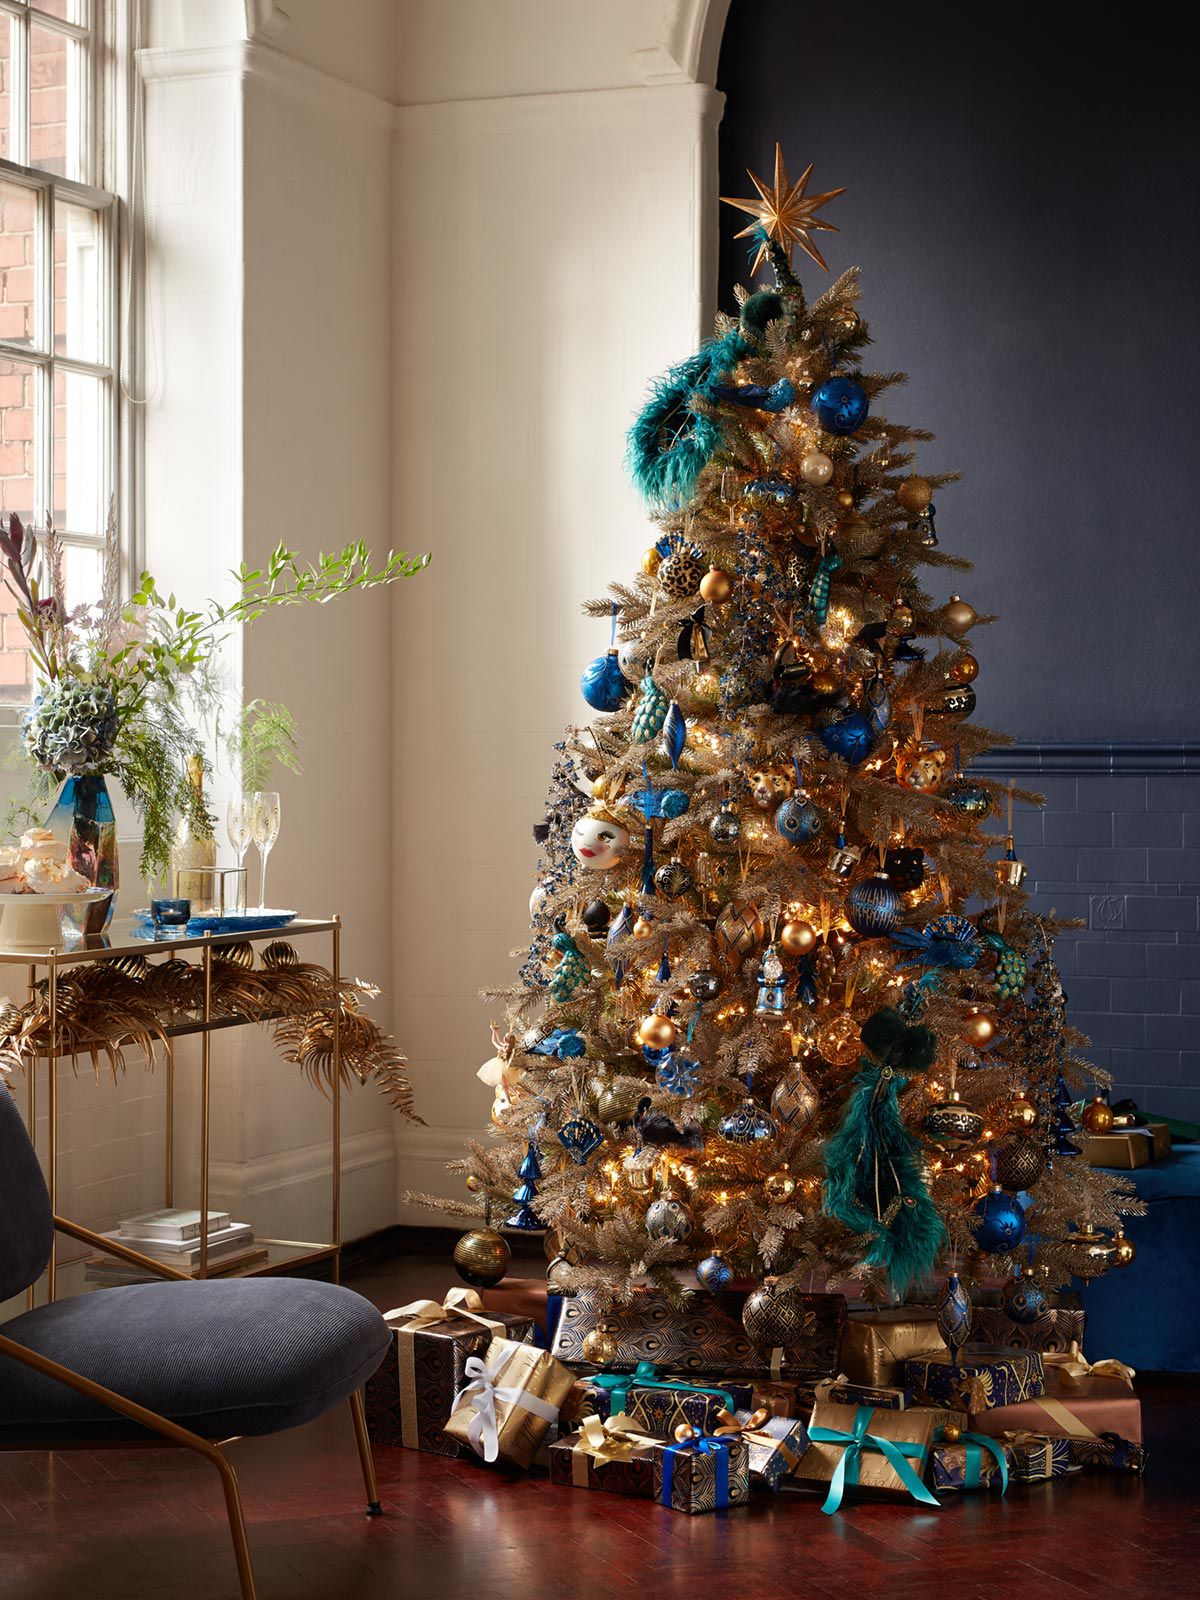 Beautiful Christmas tree decorated with opulent, art-nouveau inspired baubles and ornaments